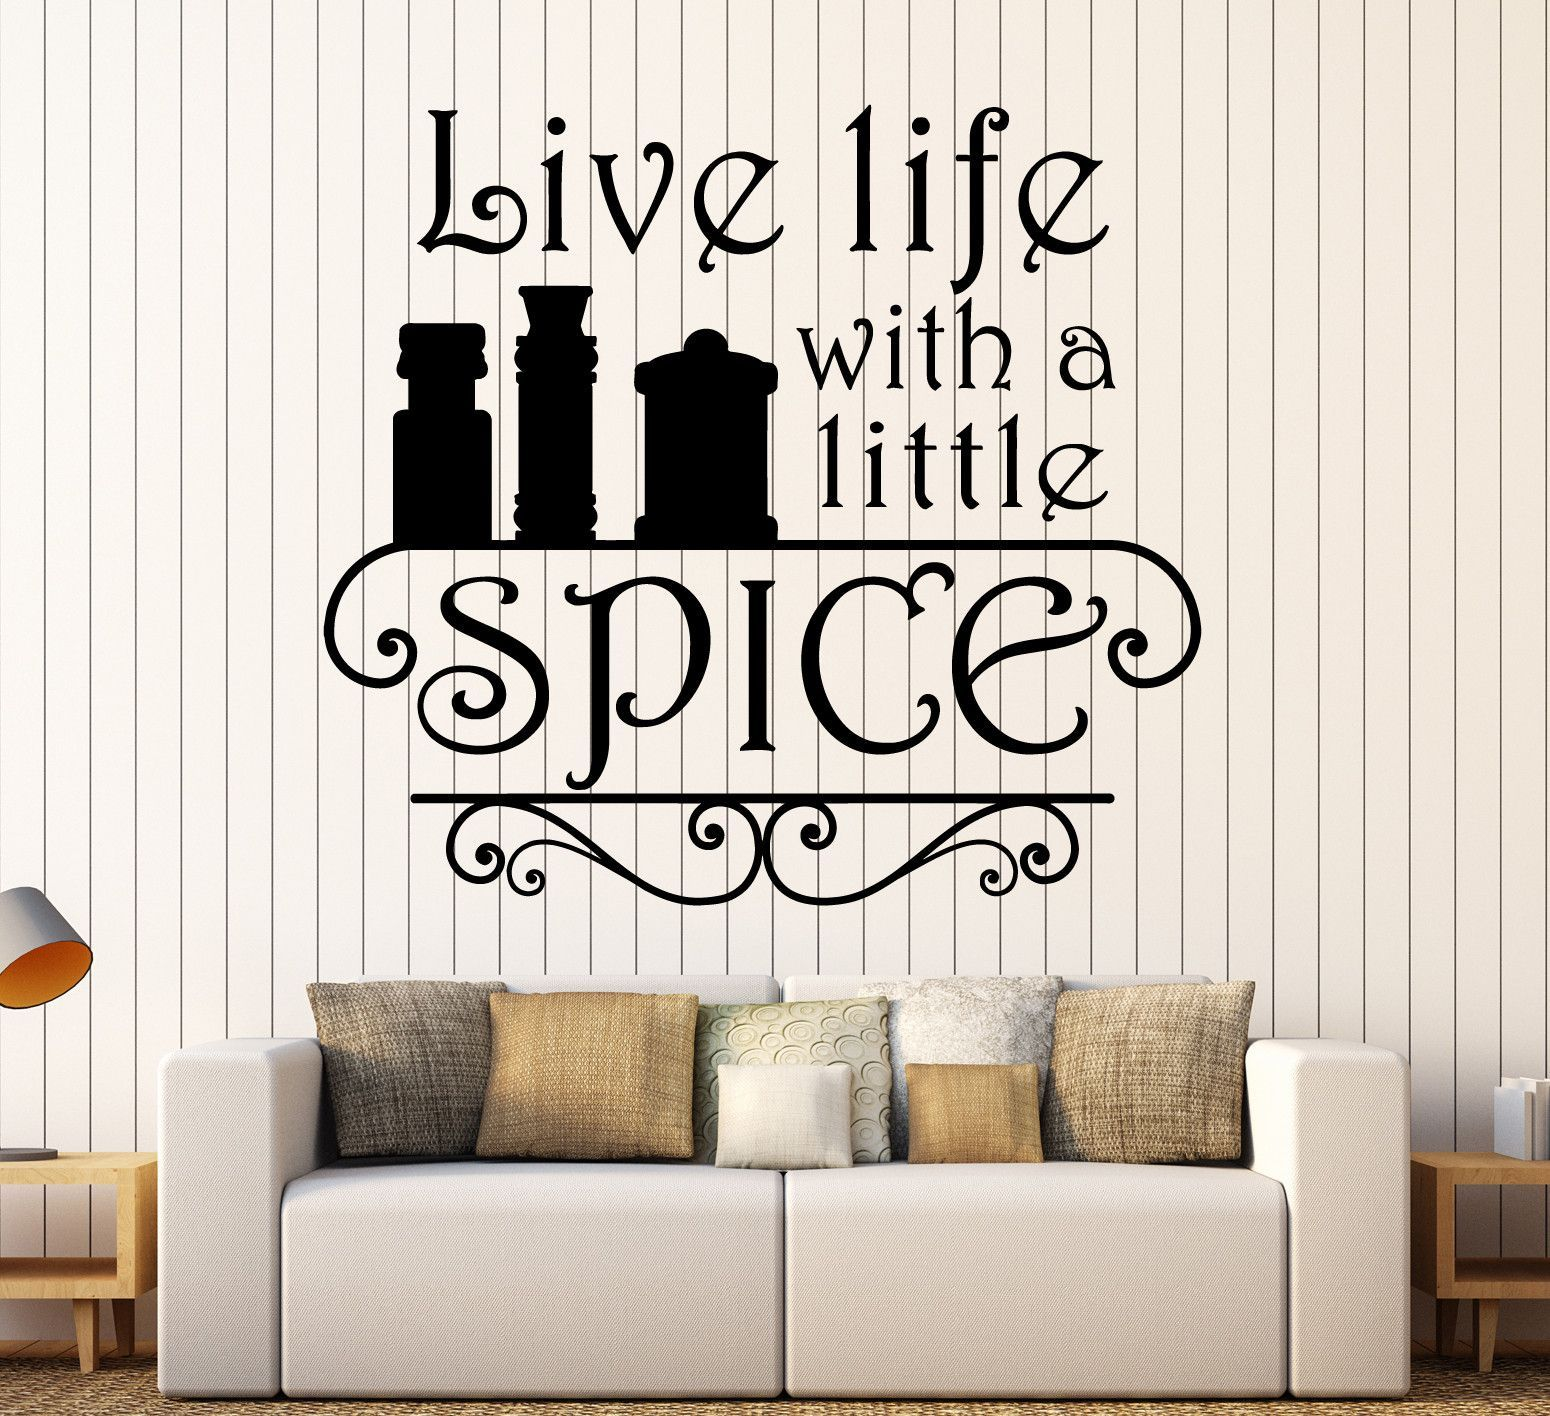 vinyl wall decal kitchen quote spice chef restaurant cook stickers unique gift ig4534 on kitchen decor quotes wall decals id=56777